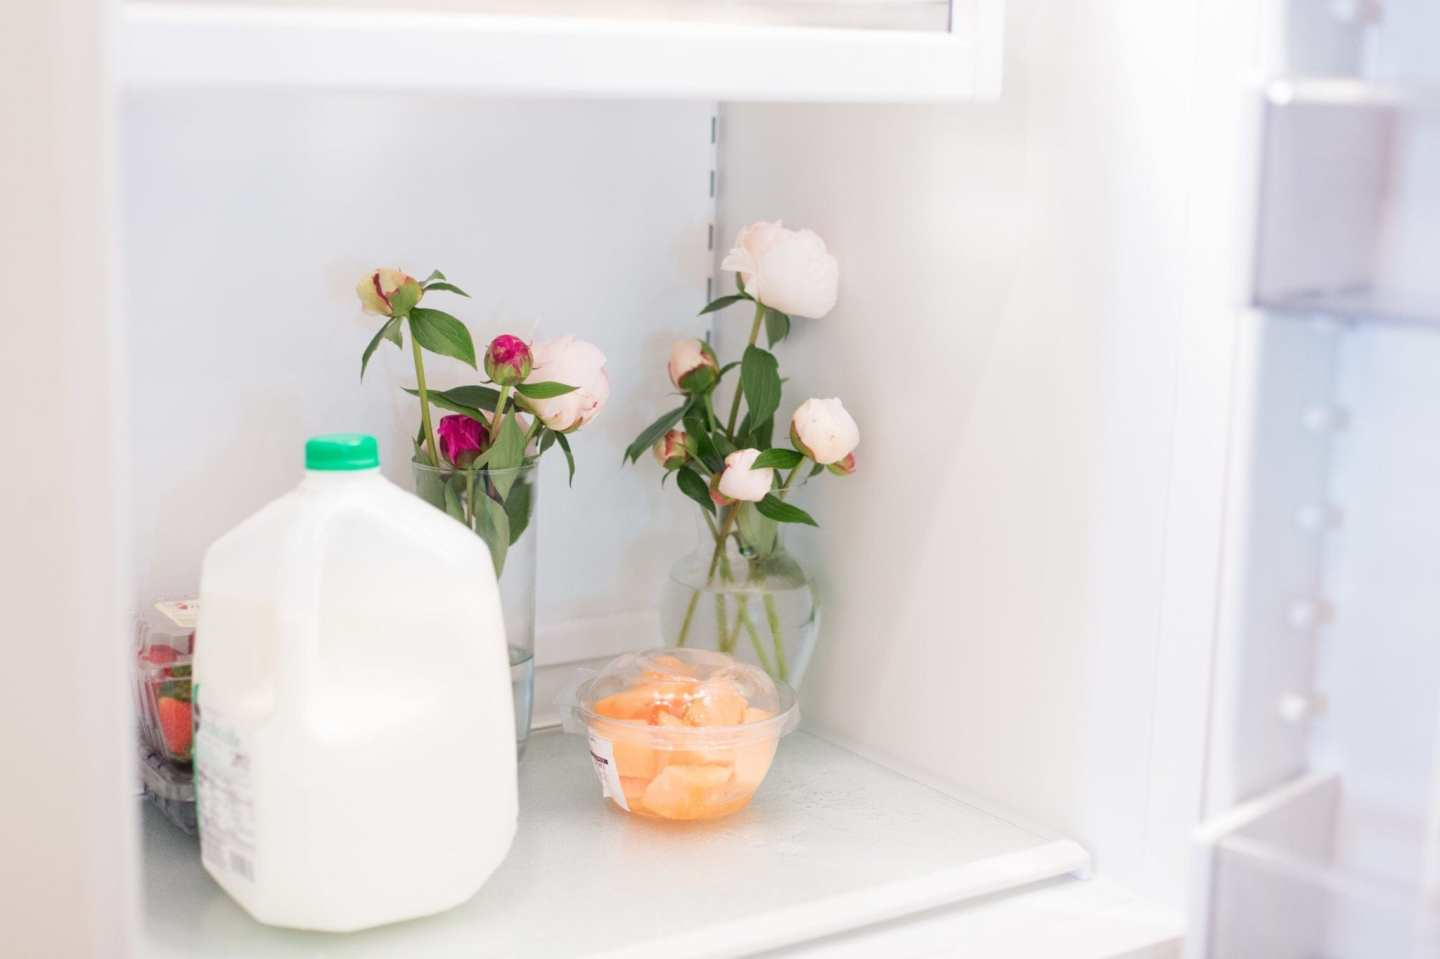 Keeping peonies in the refrigerator and tips to keep peonies alive longer.